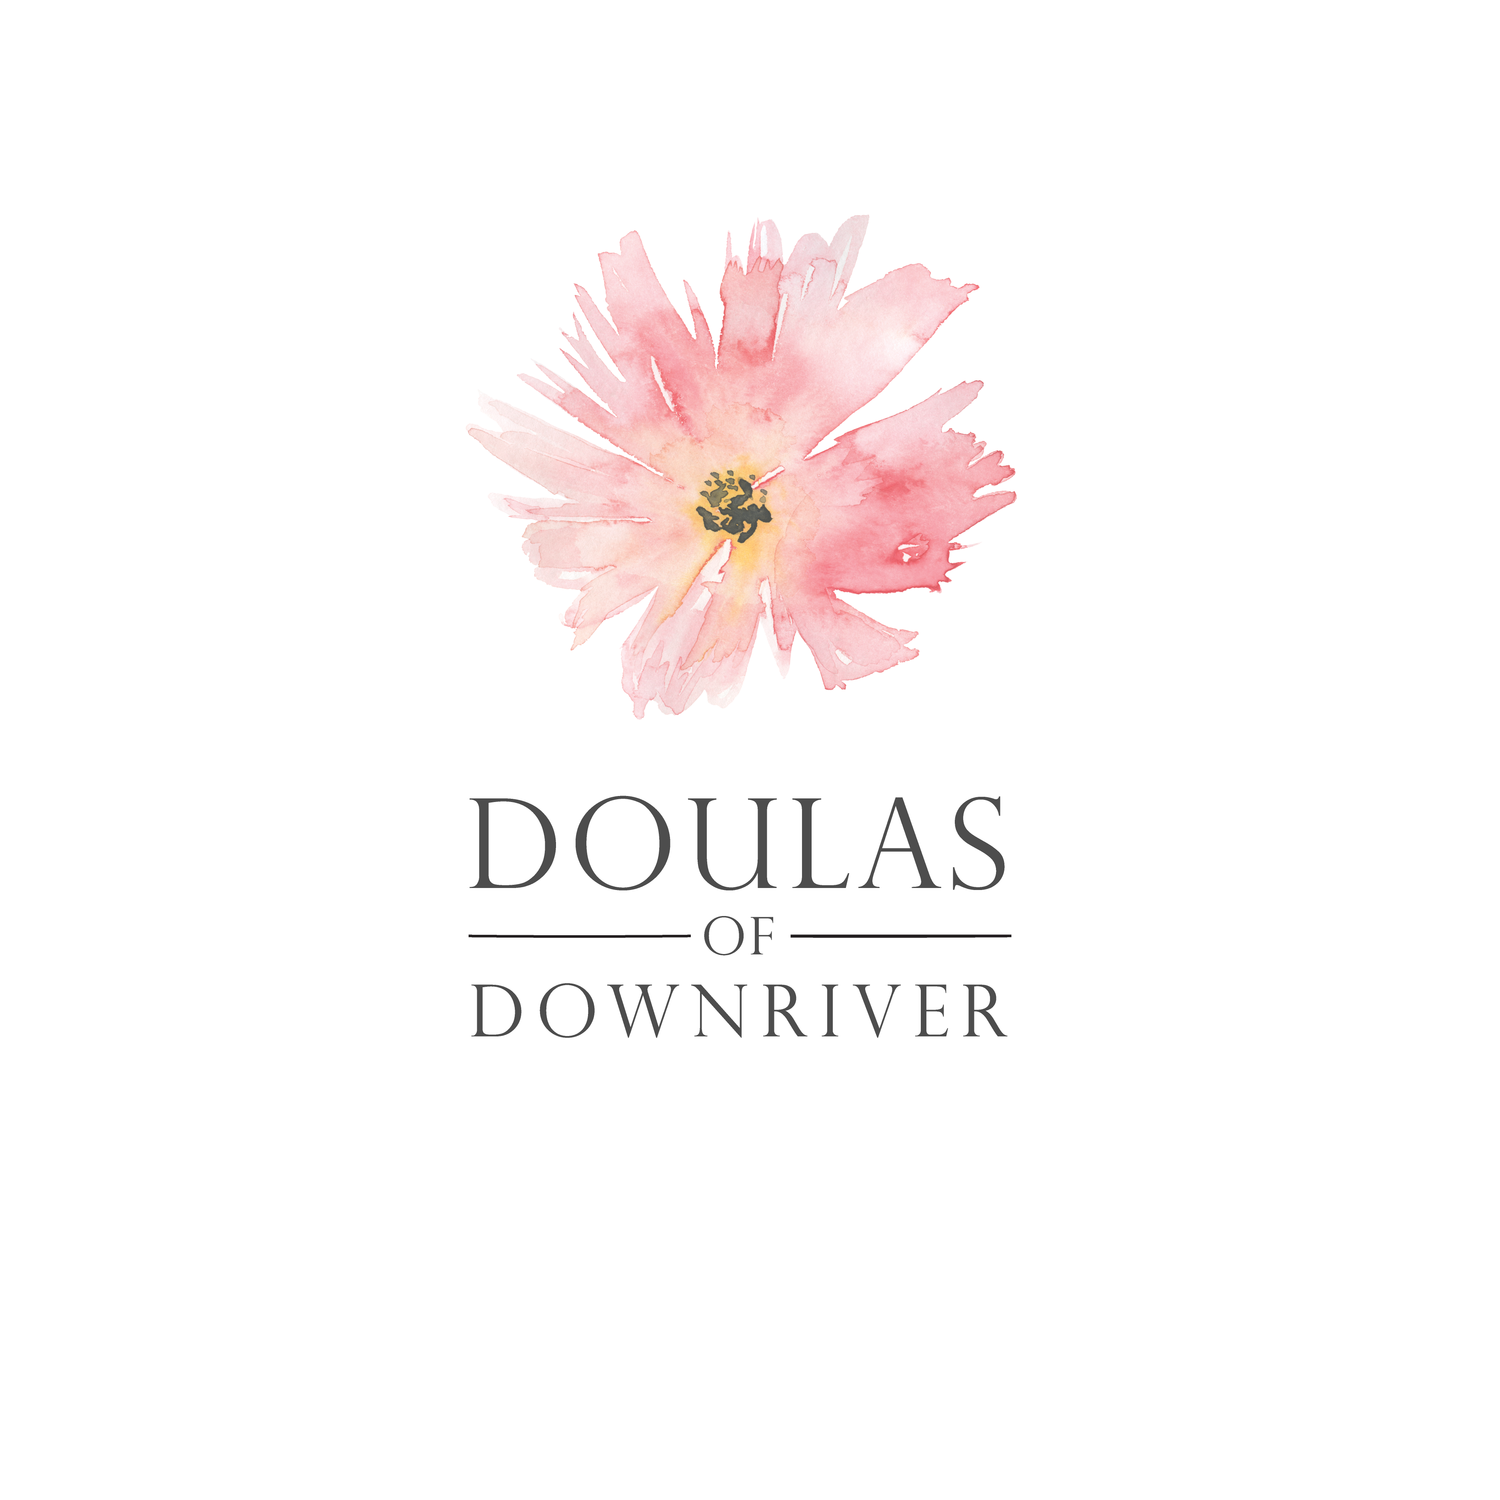 Doulas of Downriver